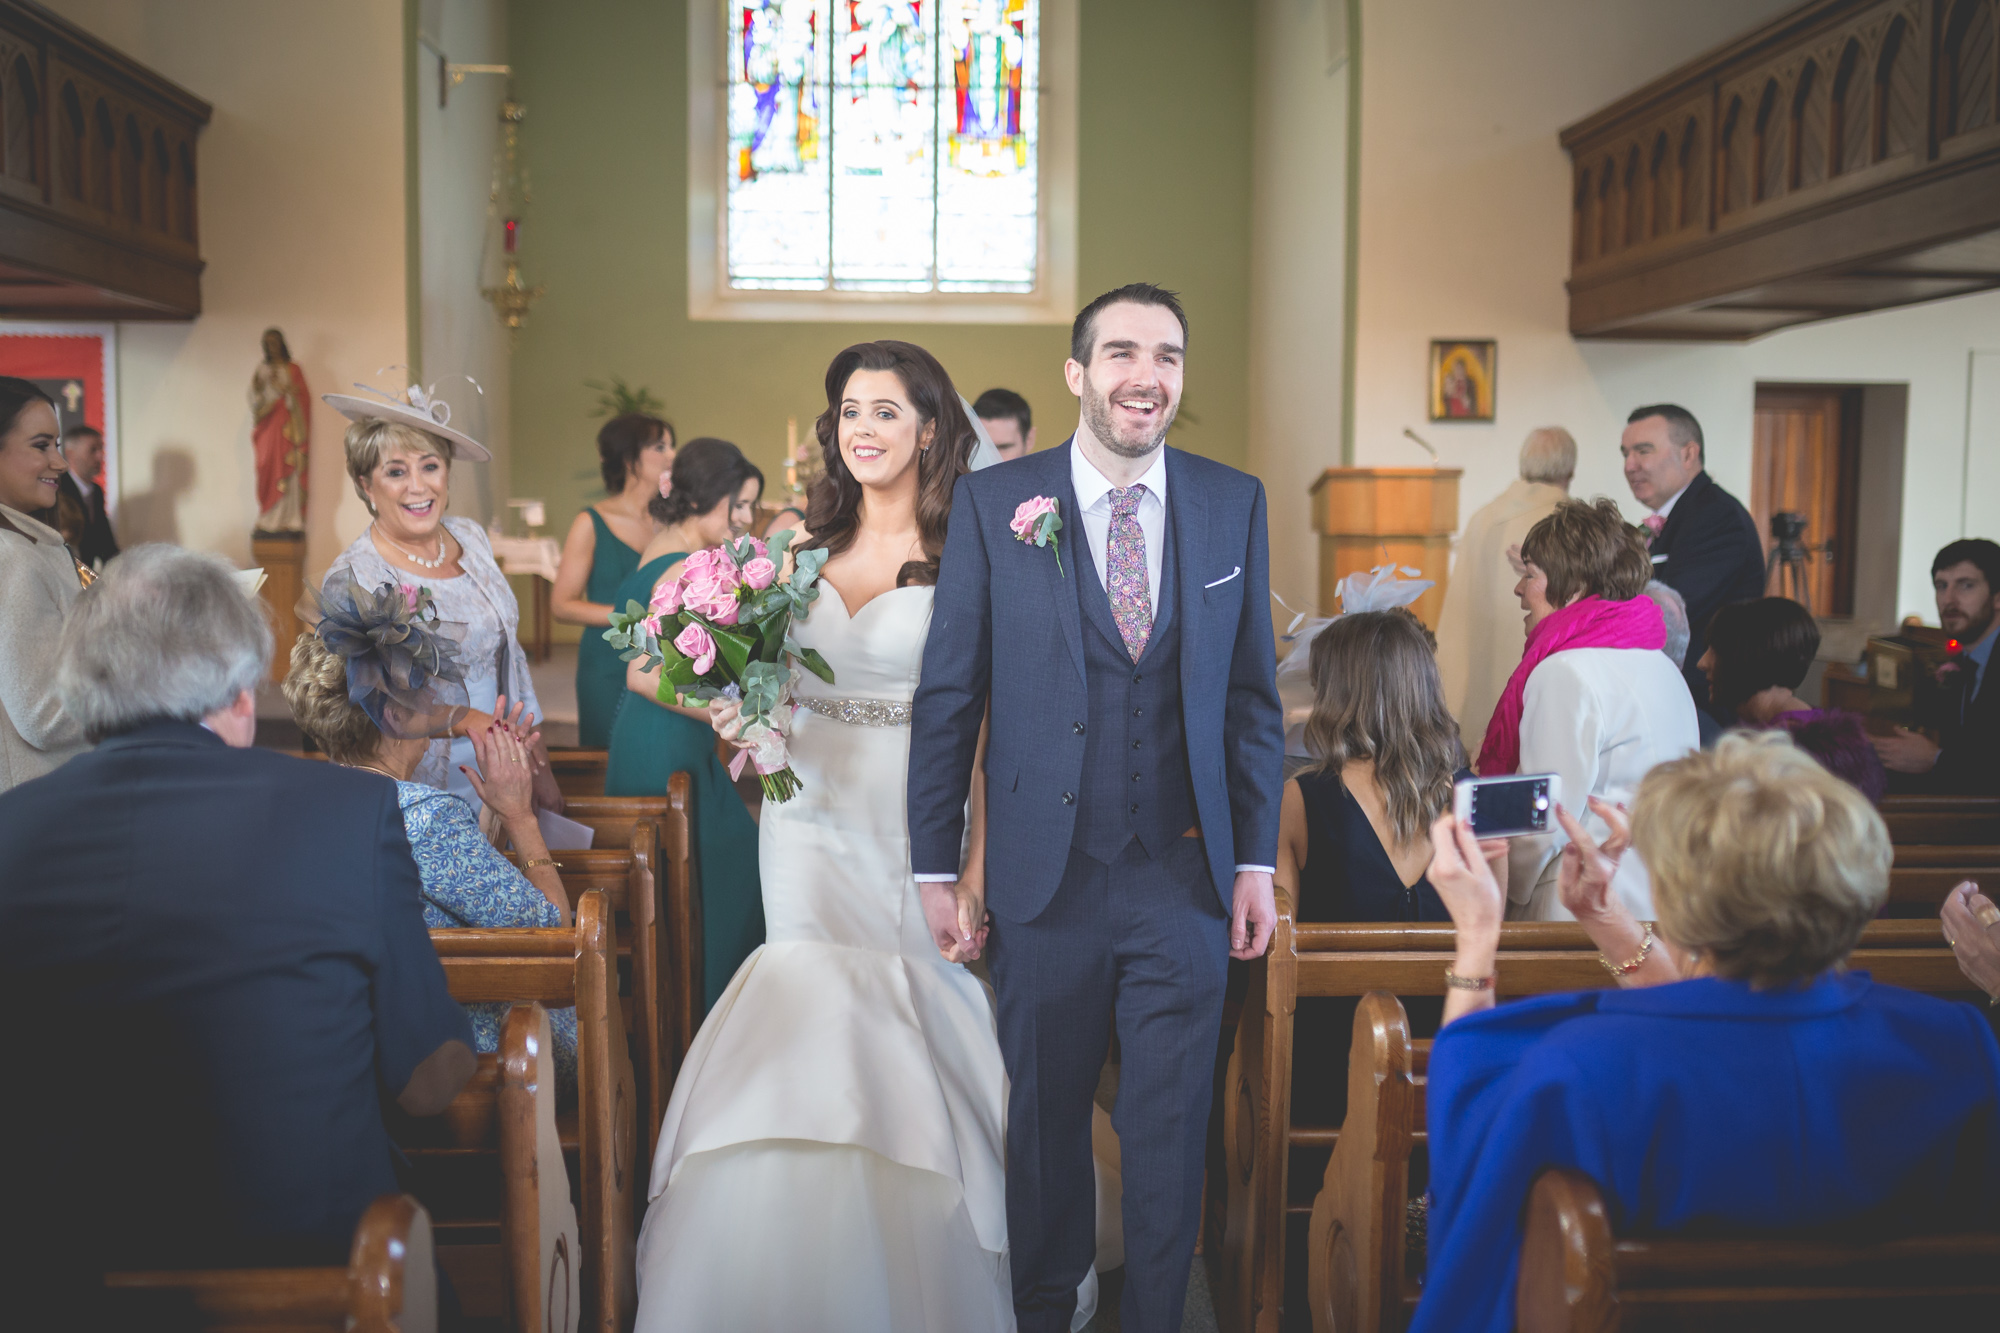 Francis&Oonagh-Ceremony-100.jpg